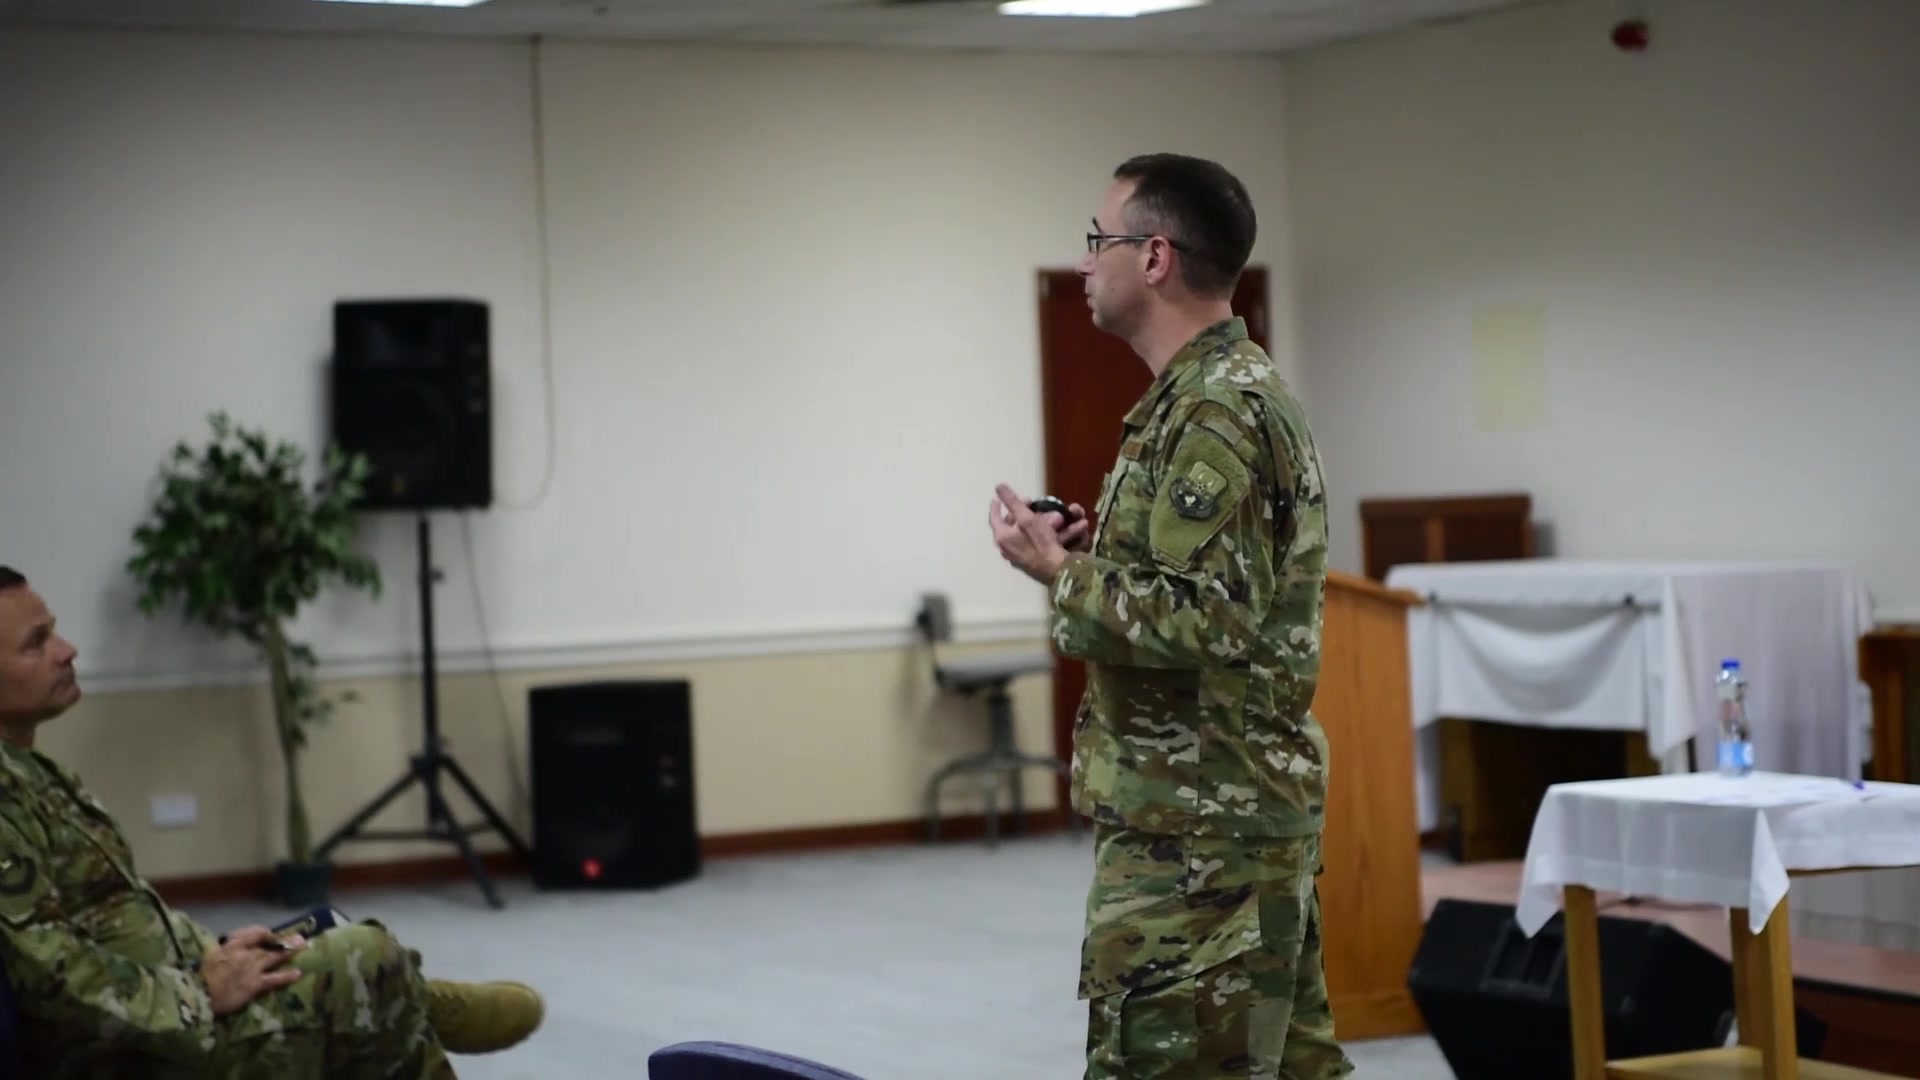 This I Am the Mission features Chaplain Williams! He shows us how the Chapel helps Airmen carry out the mission with multiple options to improve morale and encourage resiliency. Check it out in our video!